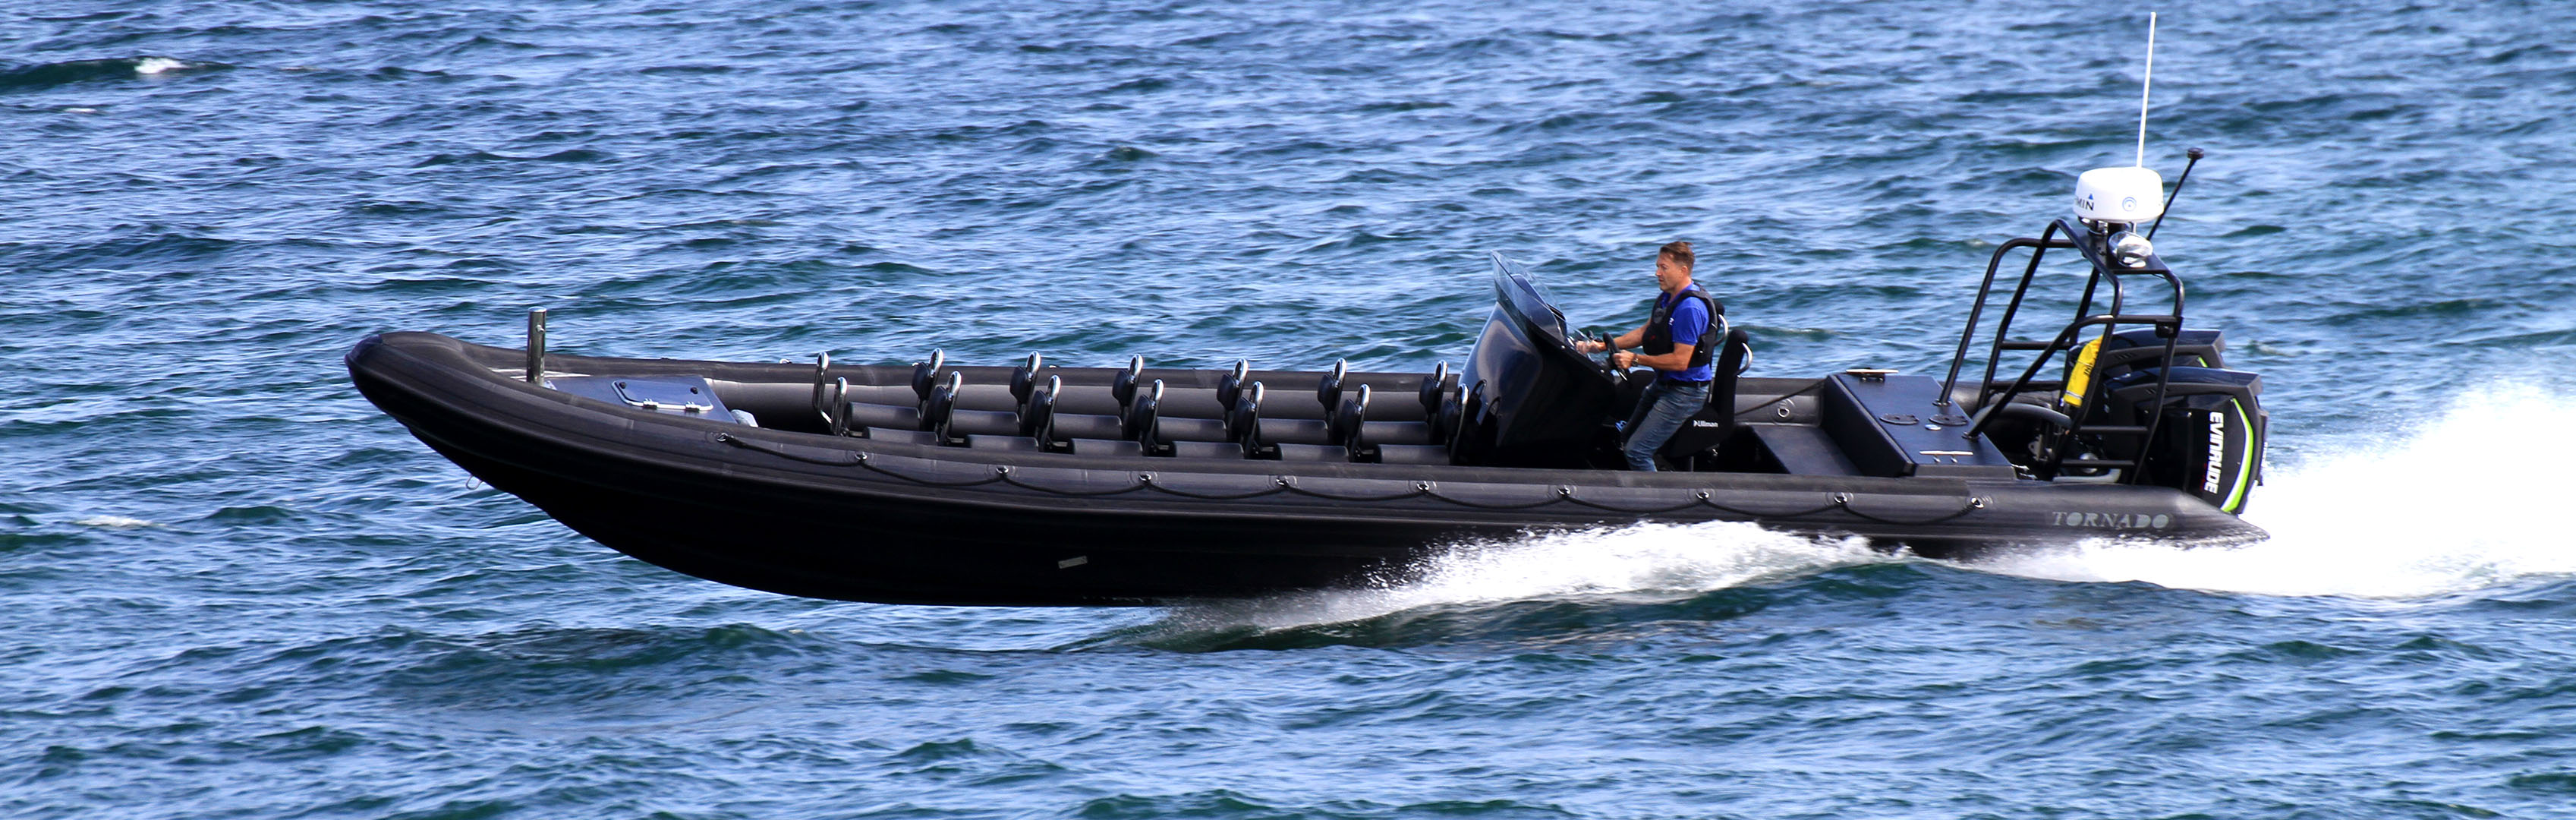 11m high performance rib from Tornado Boats